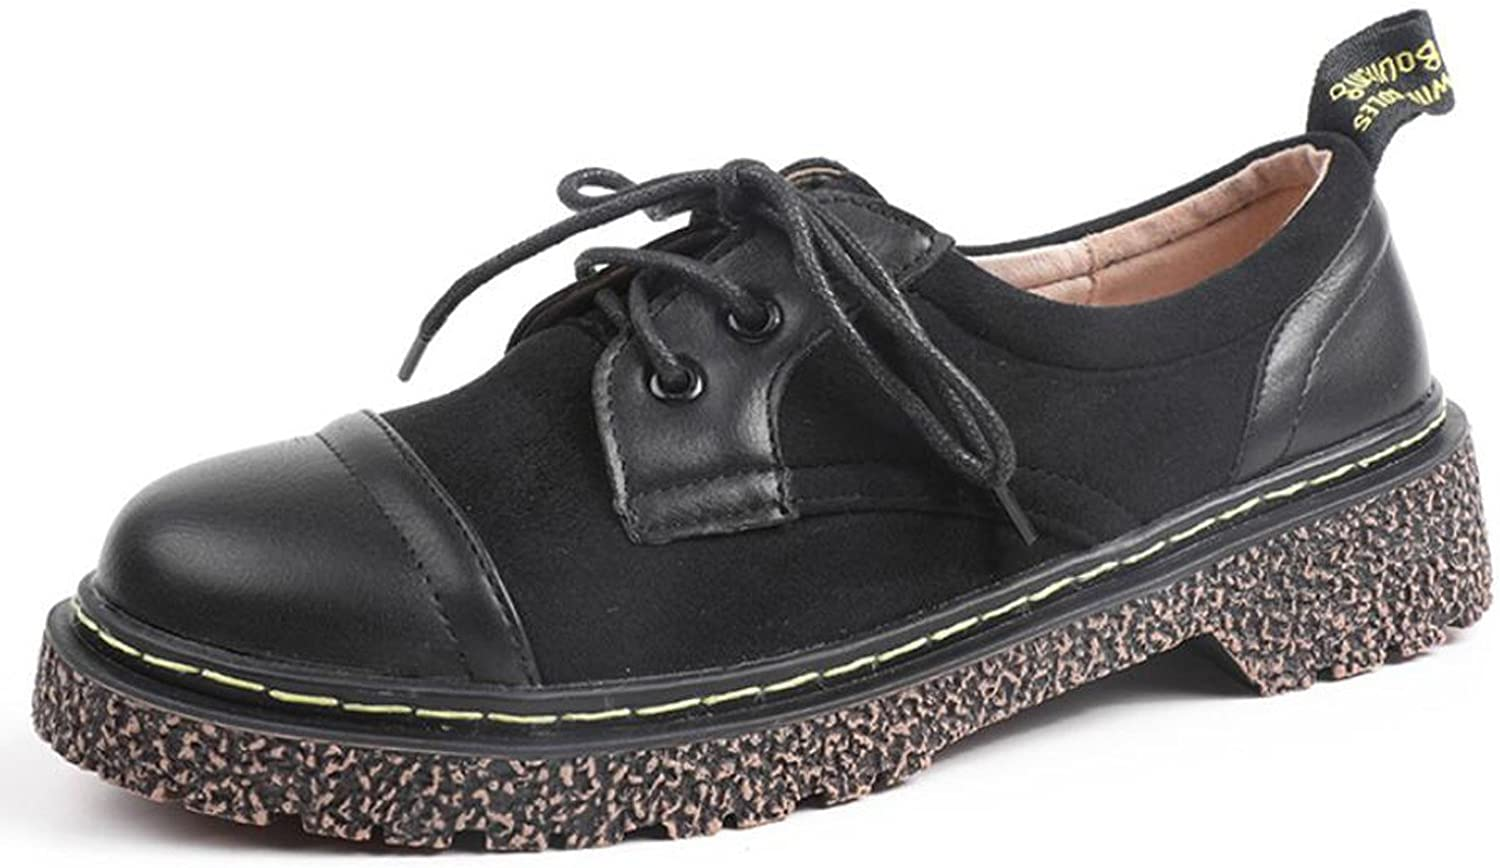 Women's shoes Lace-Up Loafers Low Heel Flat shoes for Outdoor Fall